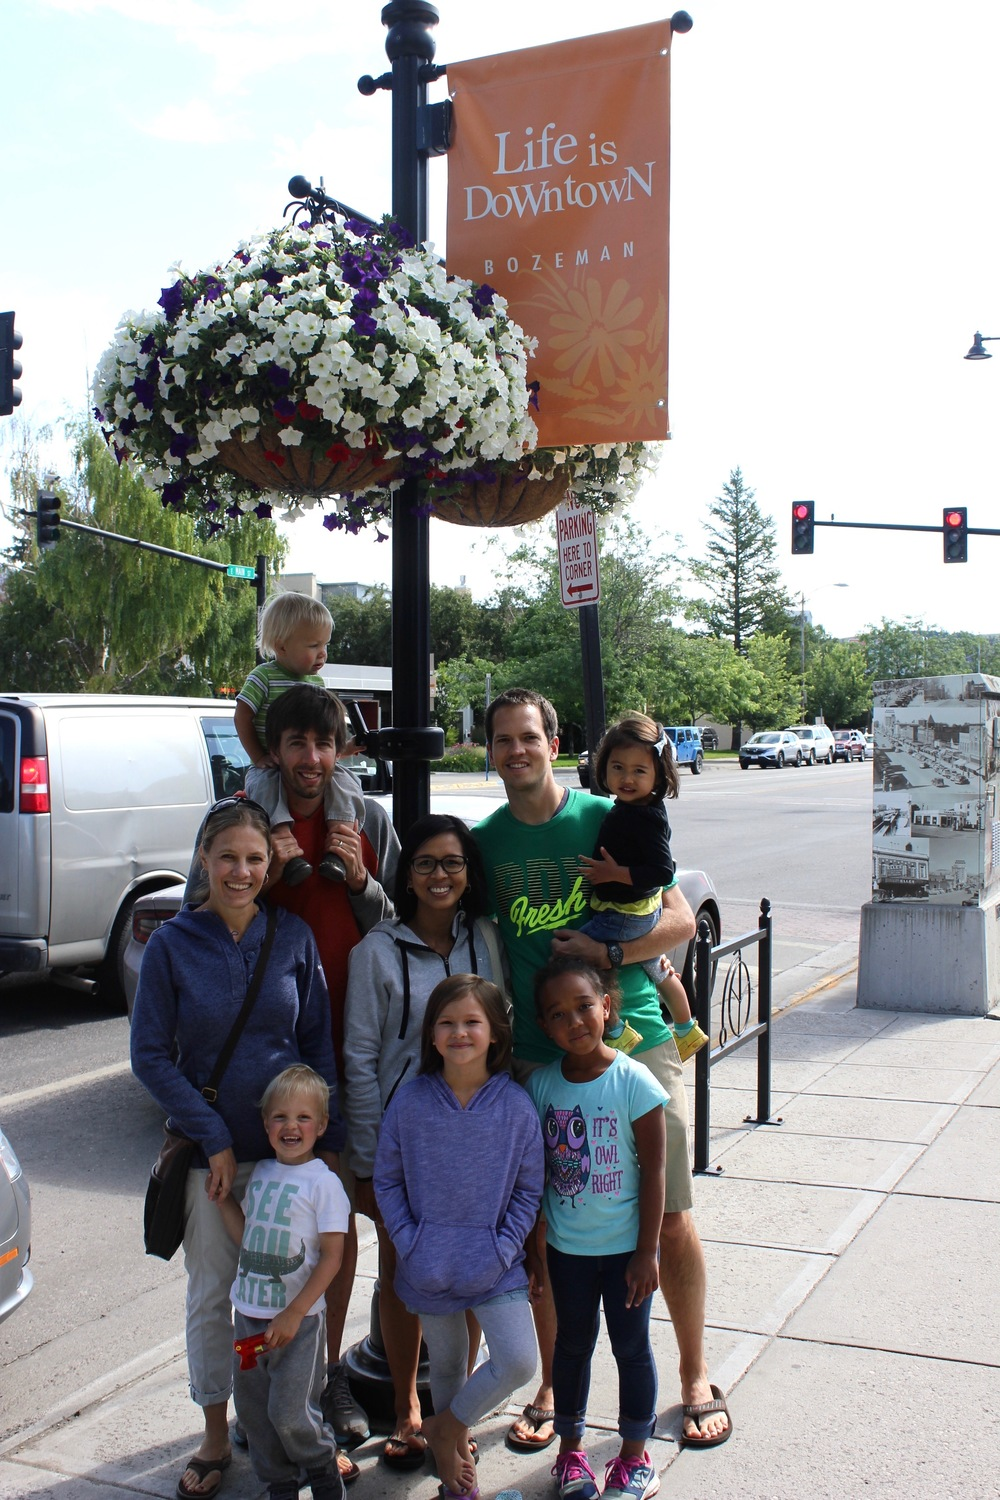 Downtown Bozeman, MT with Philip, Sara, their two boys & their niece